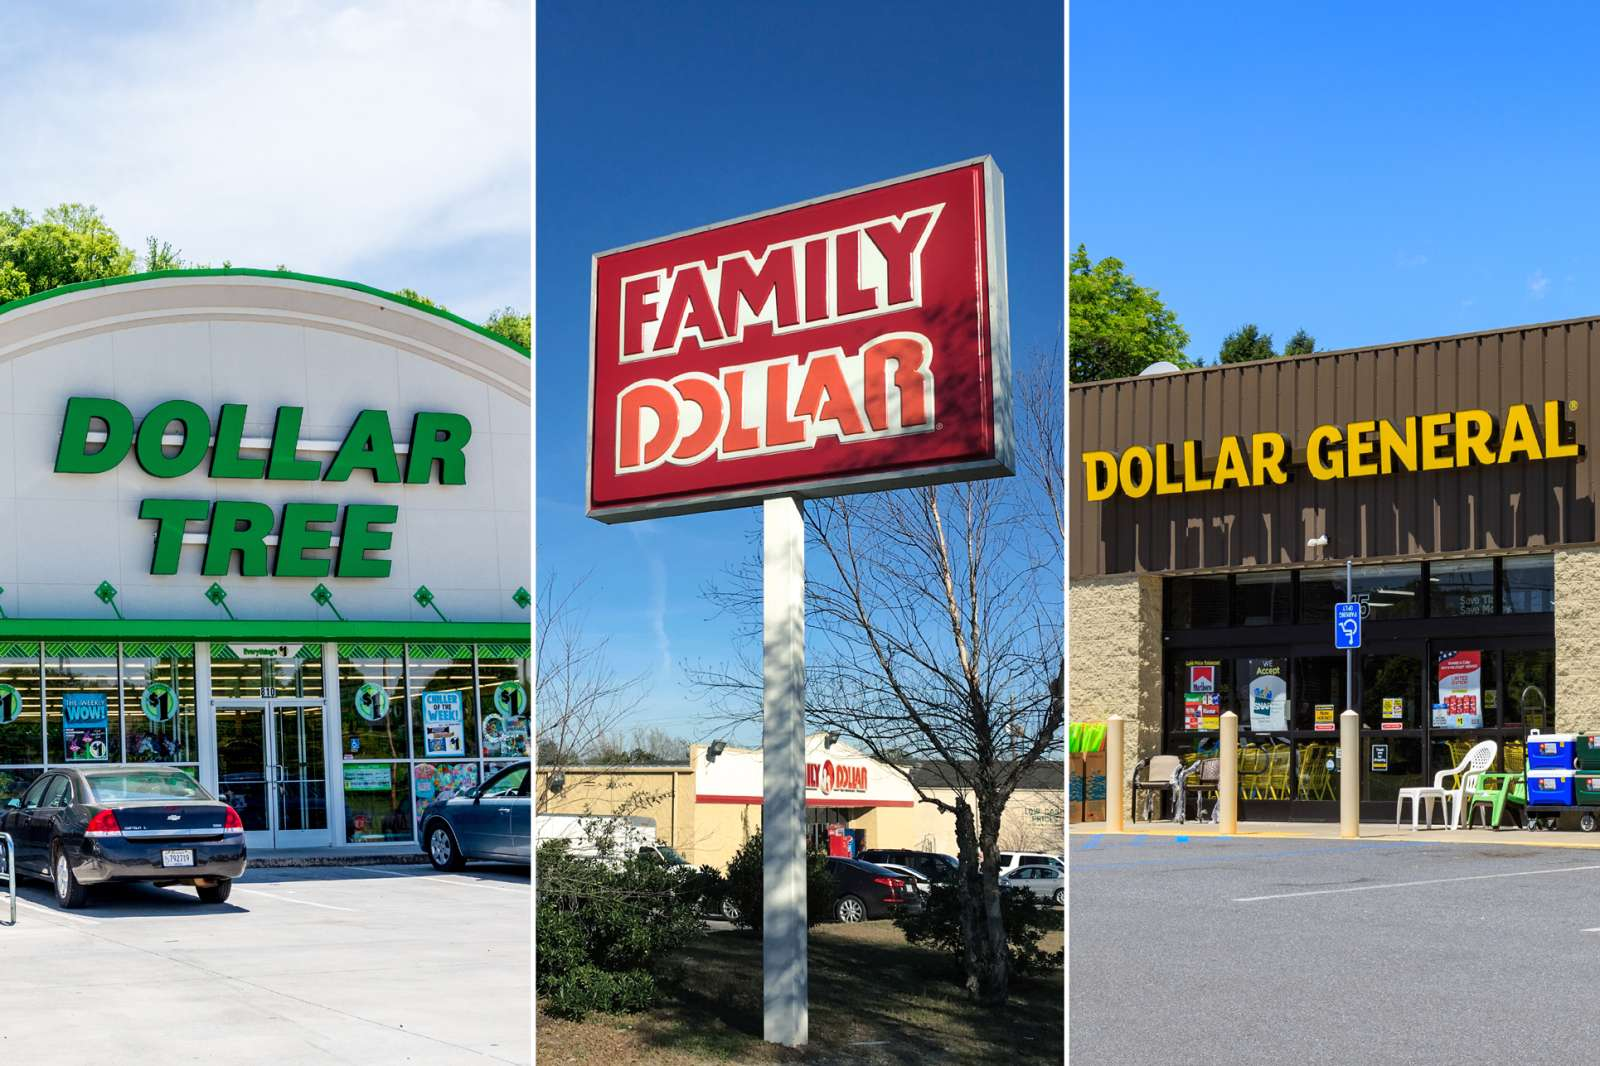 Over 40% of New Stores Opening in the U.S. Are Dollar Stores